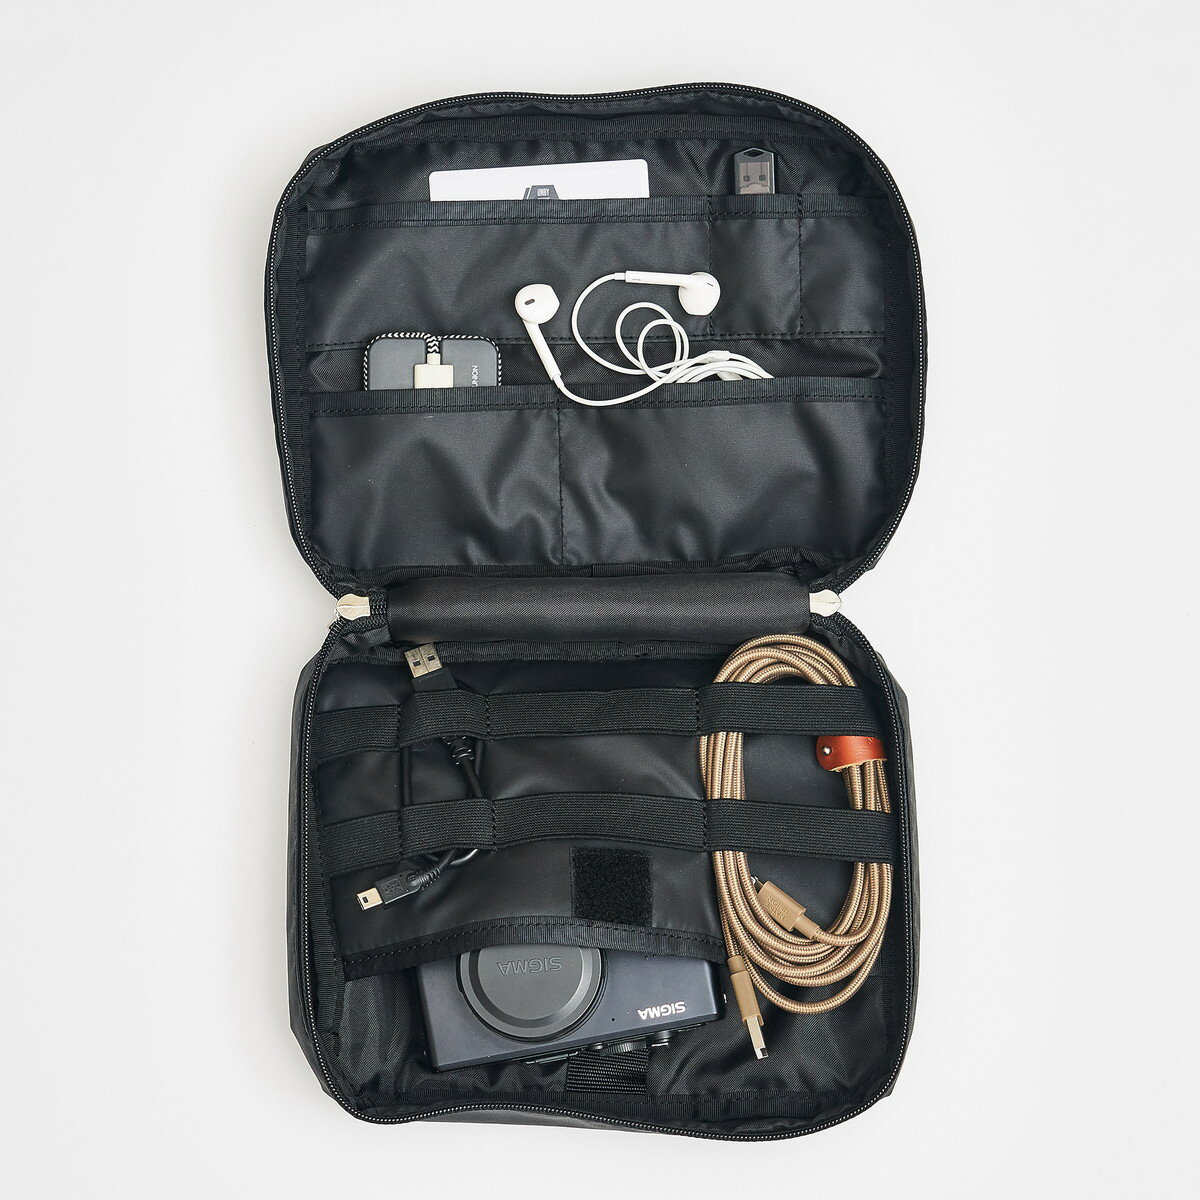 【AS2OV公式通販】 AS2OV (アッソブ) TRAVEL SERIES GADGET POUCH 061803